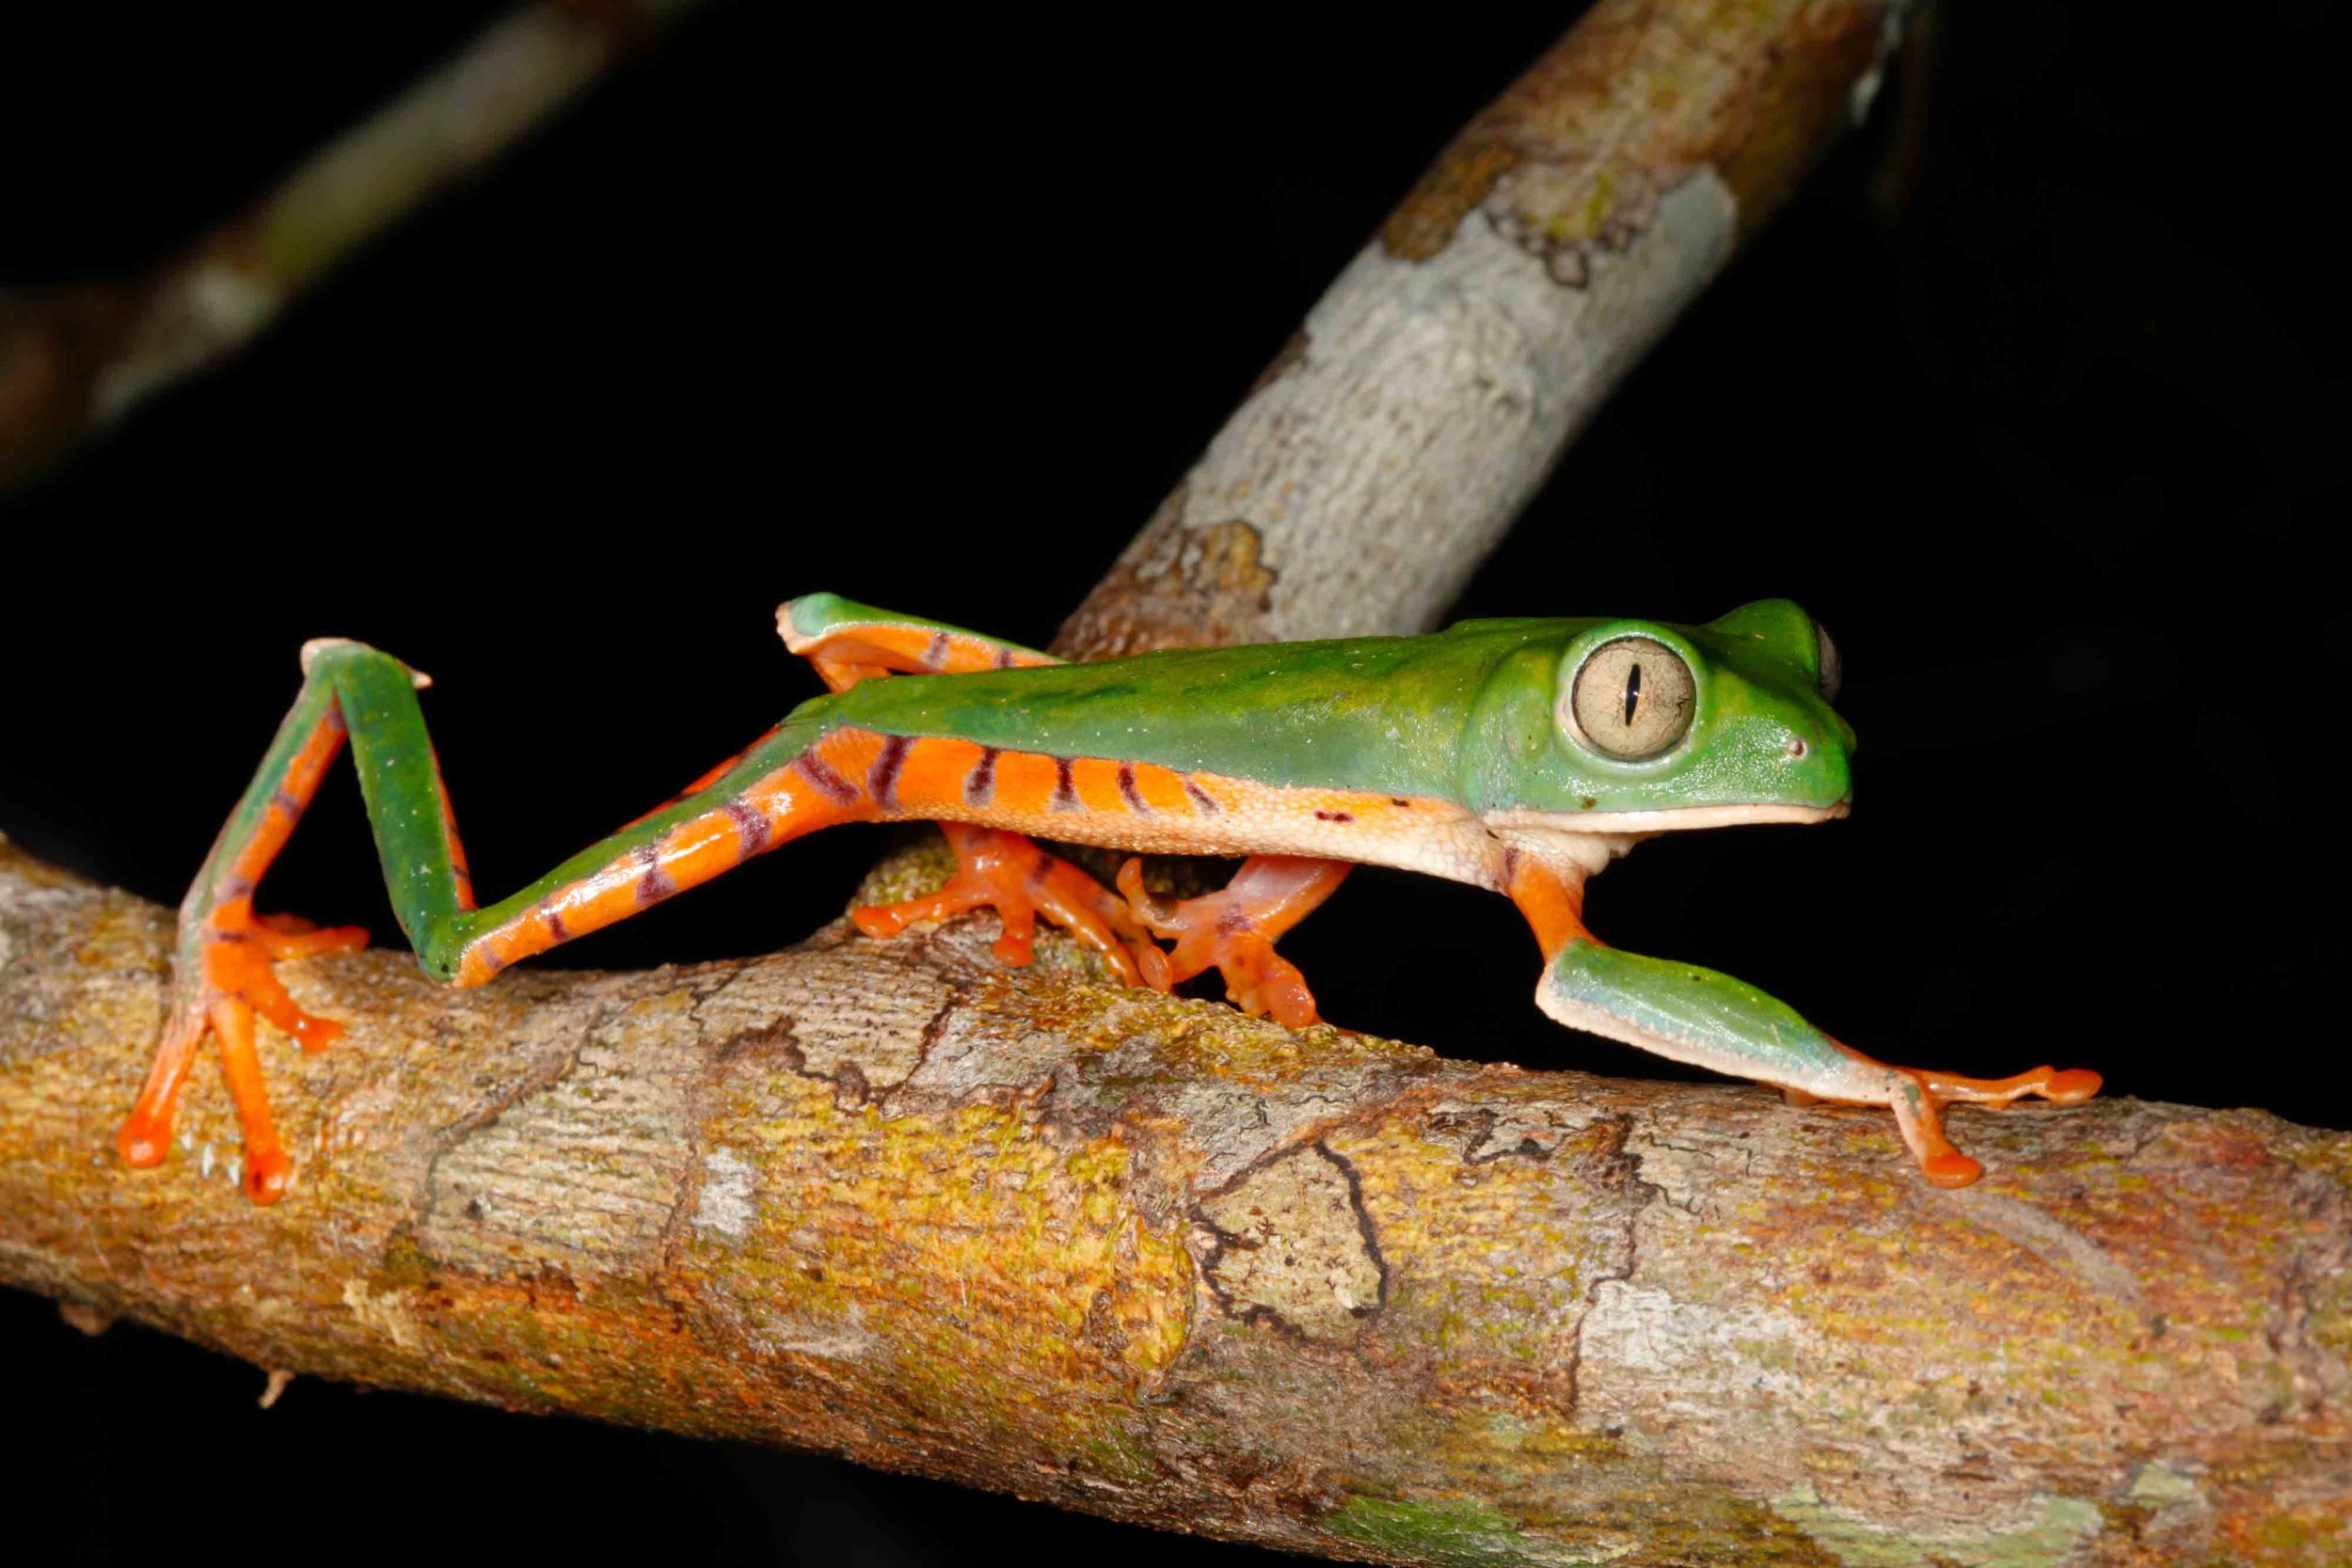 Phyllomedusa tomopterna, Barred Monkey Frog (Photo by Matt Cage)